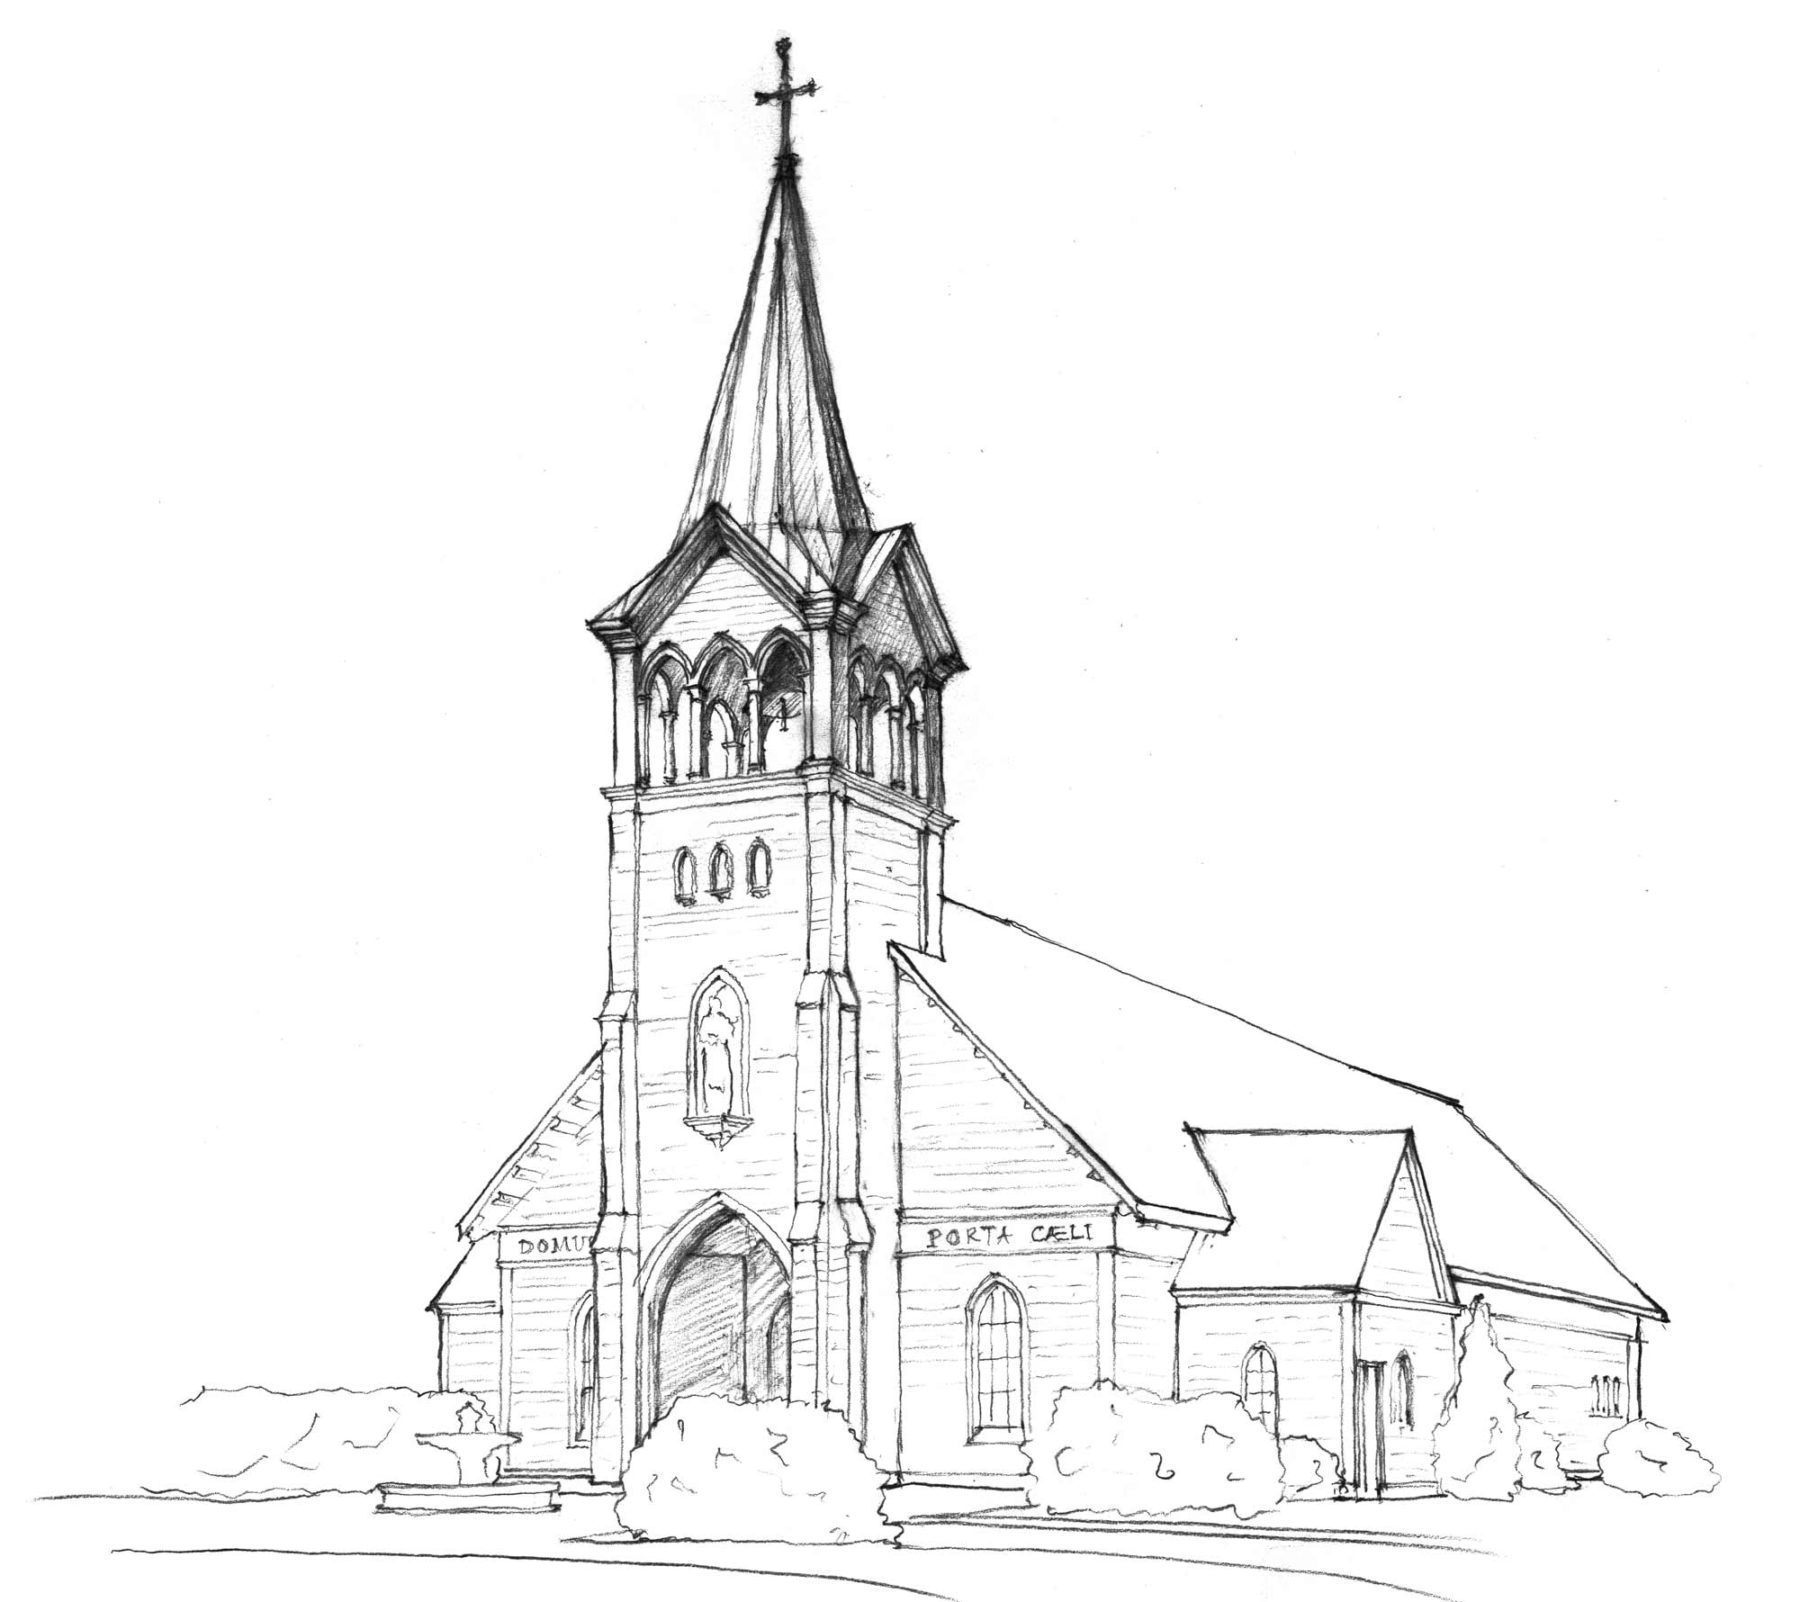 Concept sketch pencil rendering catholic church with central tower contemporary architecture drawing by Harrison Design